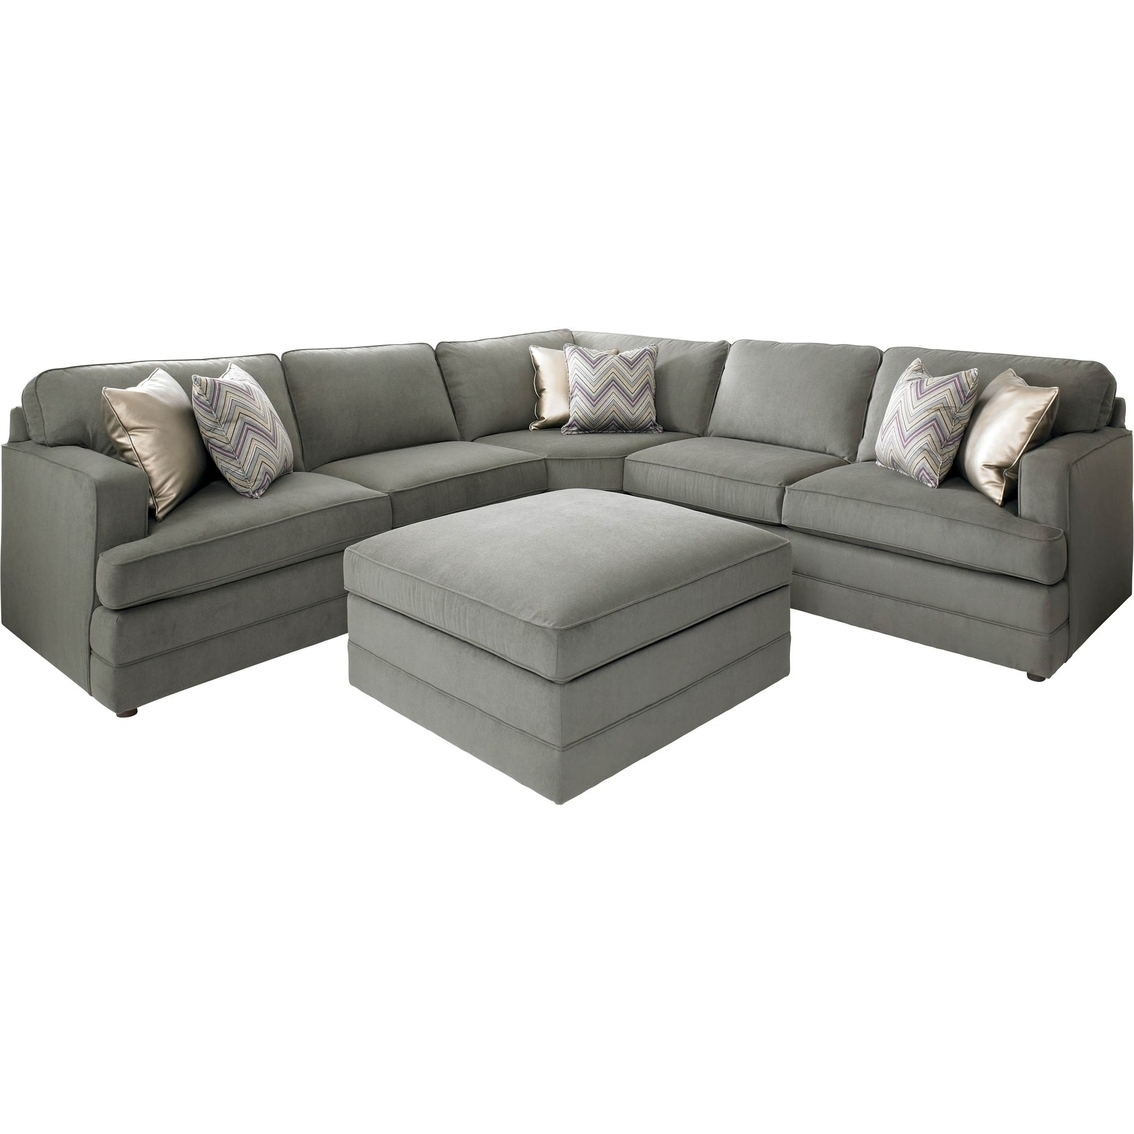 High Point Nc Sectional Sofas Regarding Most Current Bassett Dalton L Shaped Sectional Sofa With Ottoman (View 9 of 20)